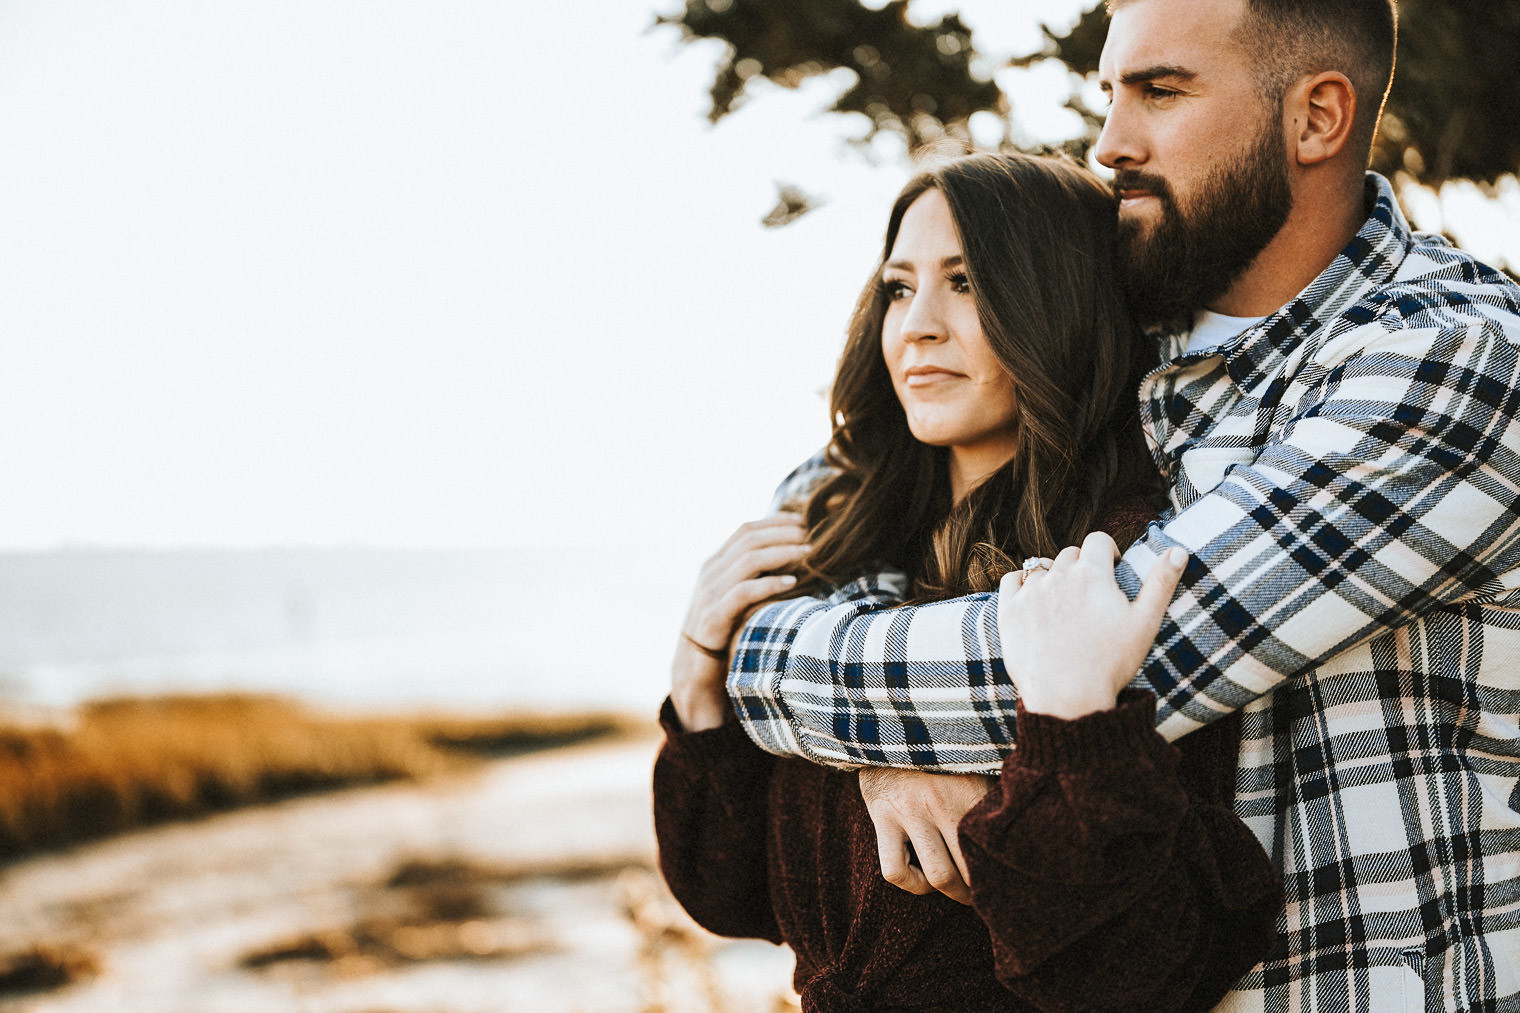 Our Engagement Photos | Pine Barren Beauty | engagement photo ideas, engagement photo inspiration, what to wear for fall engagement photos, wedding inspiration, couple goals